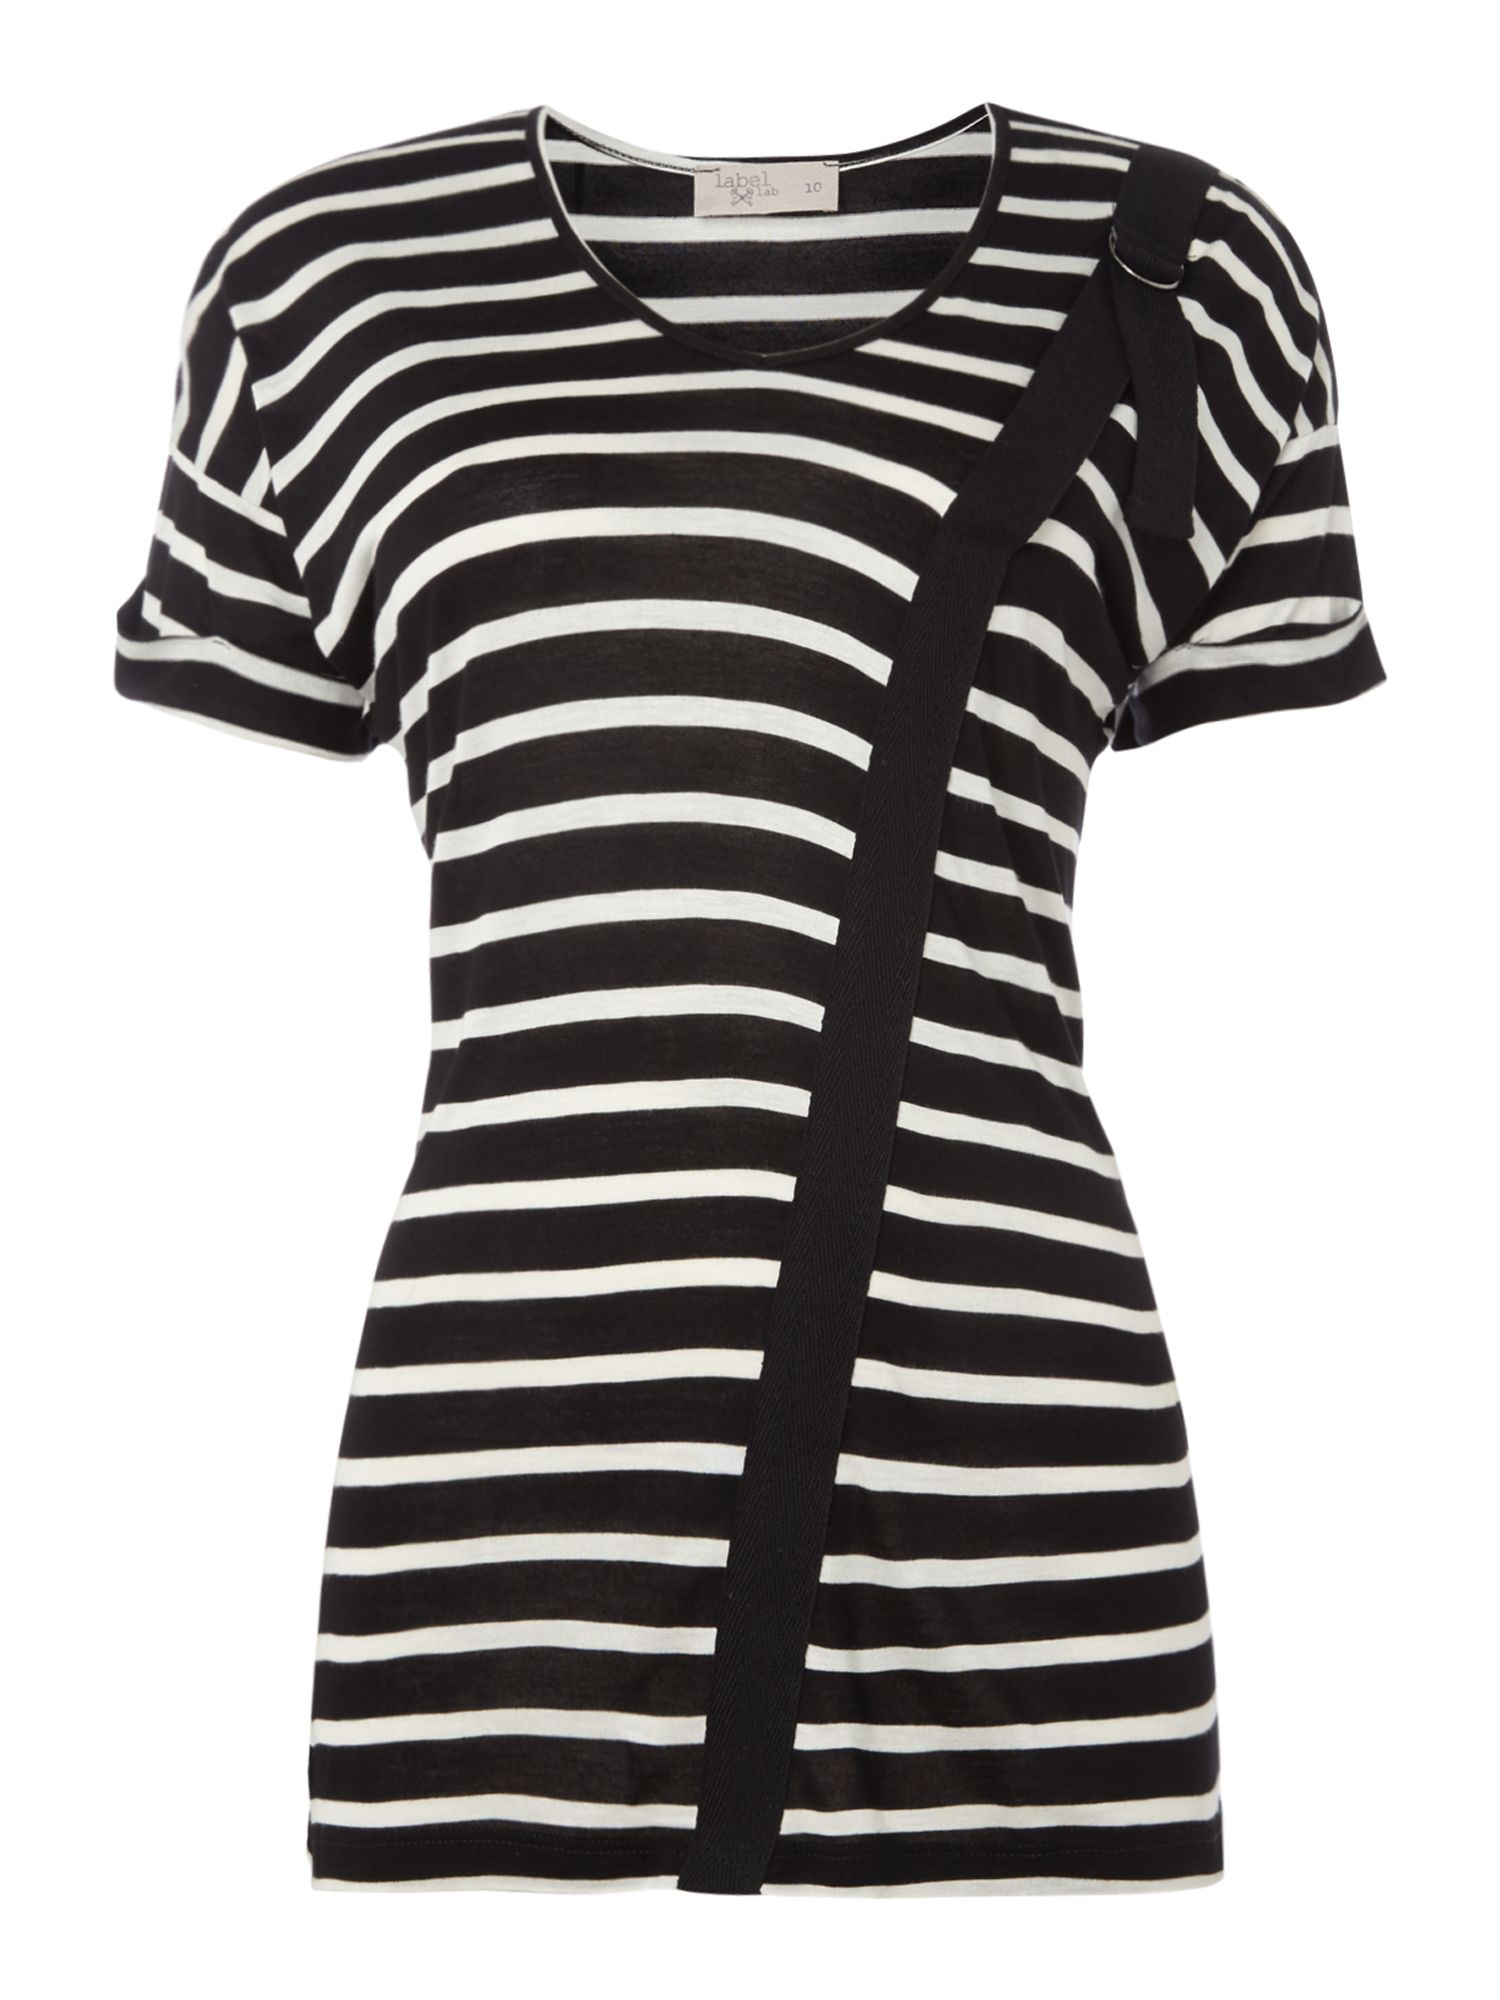 Label Lab D-Ring Detail Stripe Tee, Black/White